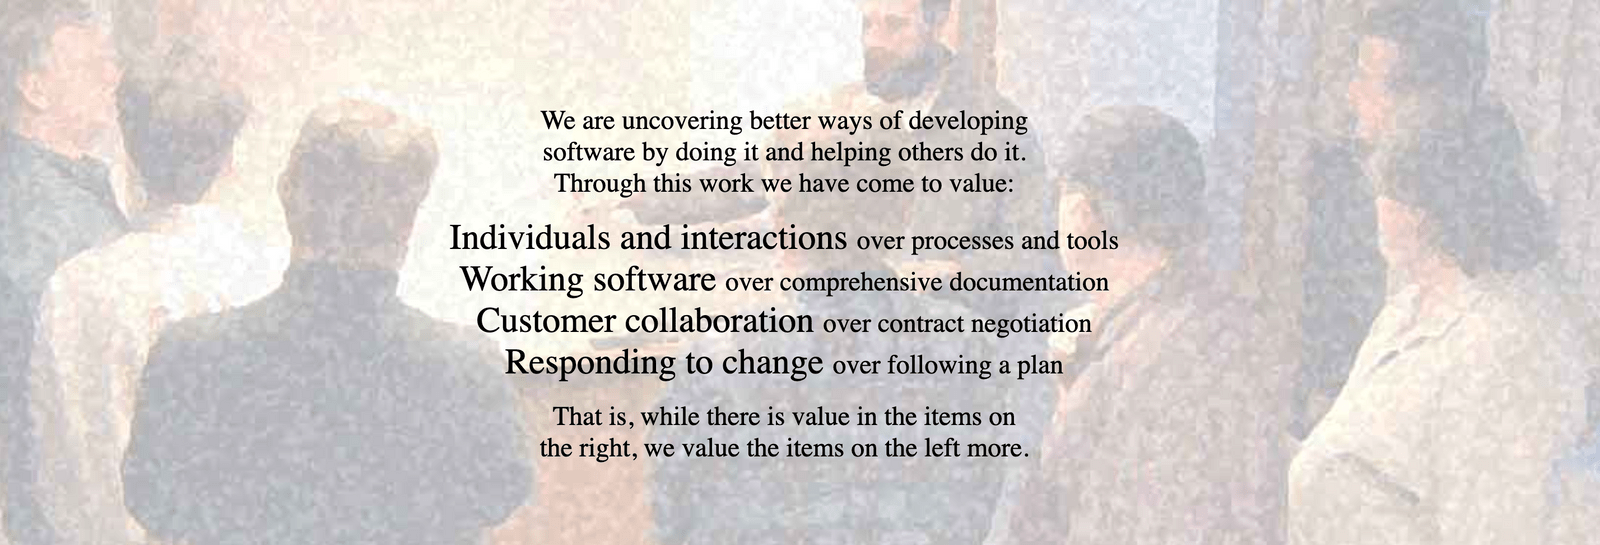 Organisation schnell und angemessen an Veränderung anzupassen: Manifesto for Agile Software Development  We are uncovering better ways of developing software by doing it and helping others do it. Through this work we have come to value:  Individuals and interactions over processes and tools Working software over comprehensive documentation Customer collaboration over contract negotiation Responding to change over following a plan  That is, while there is value in the items on the right, we value the items on the left more.